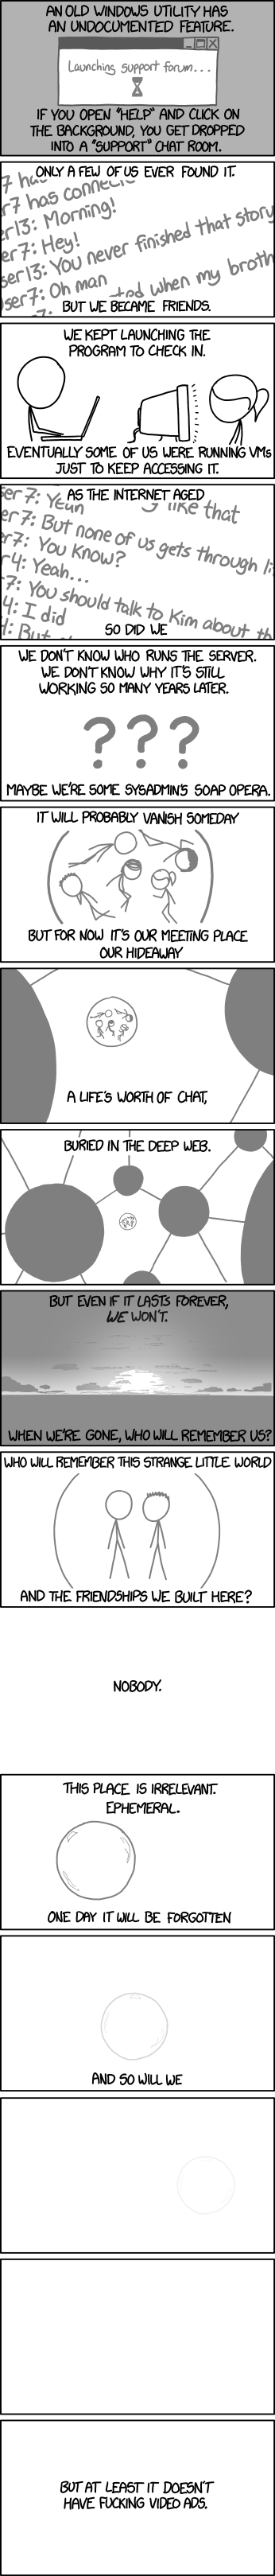 2013-12-18_xkcd_facebook_undocumented_feature